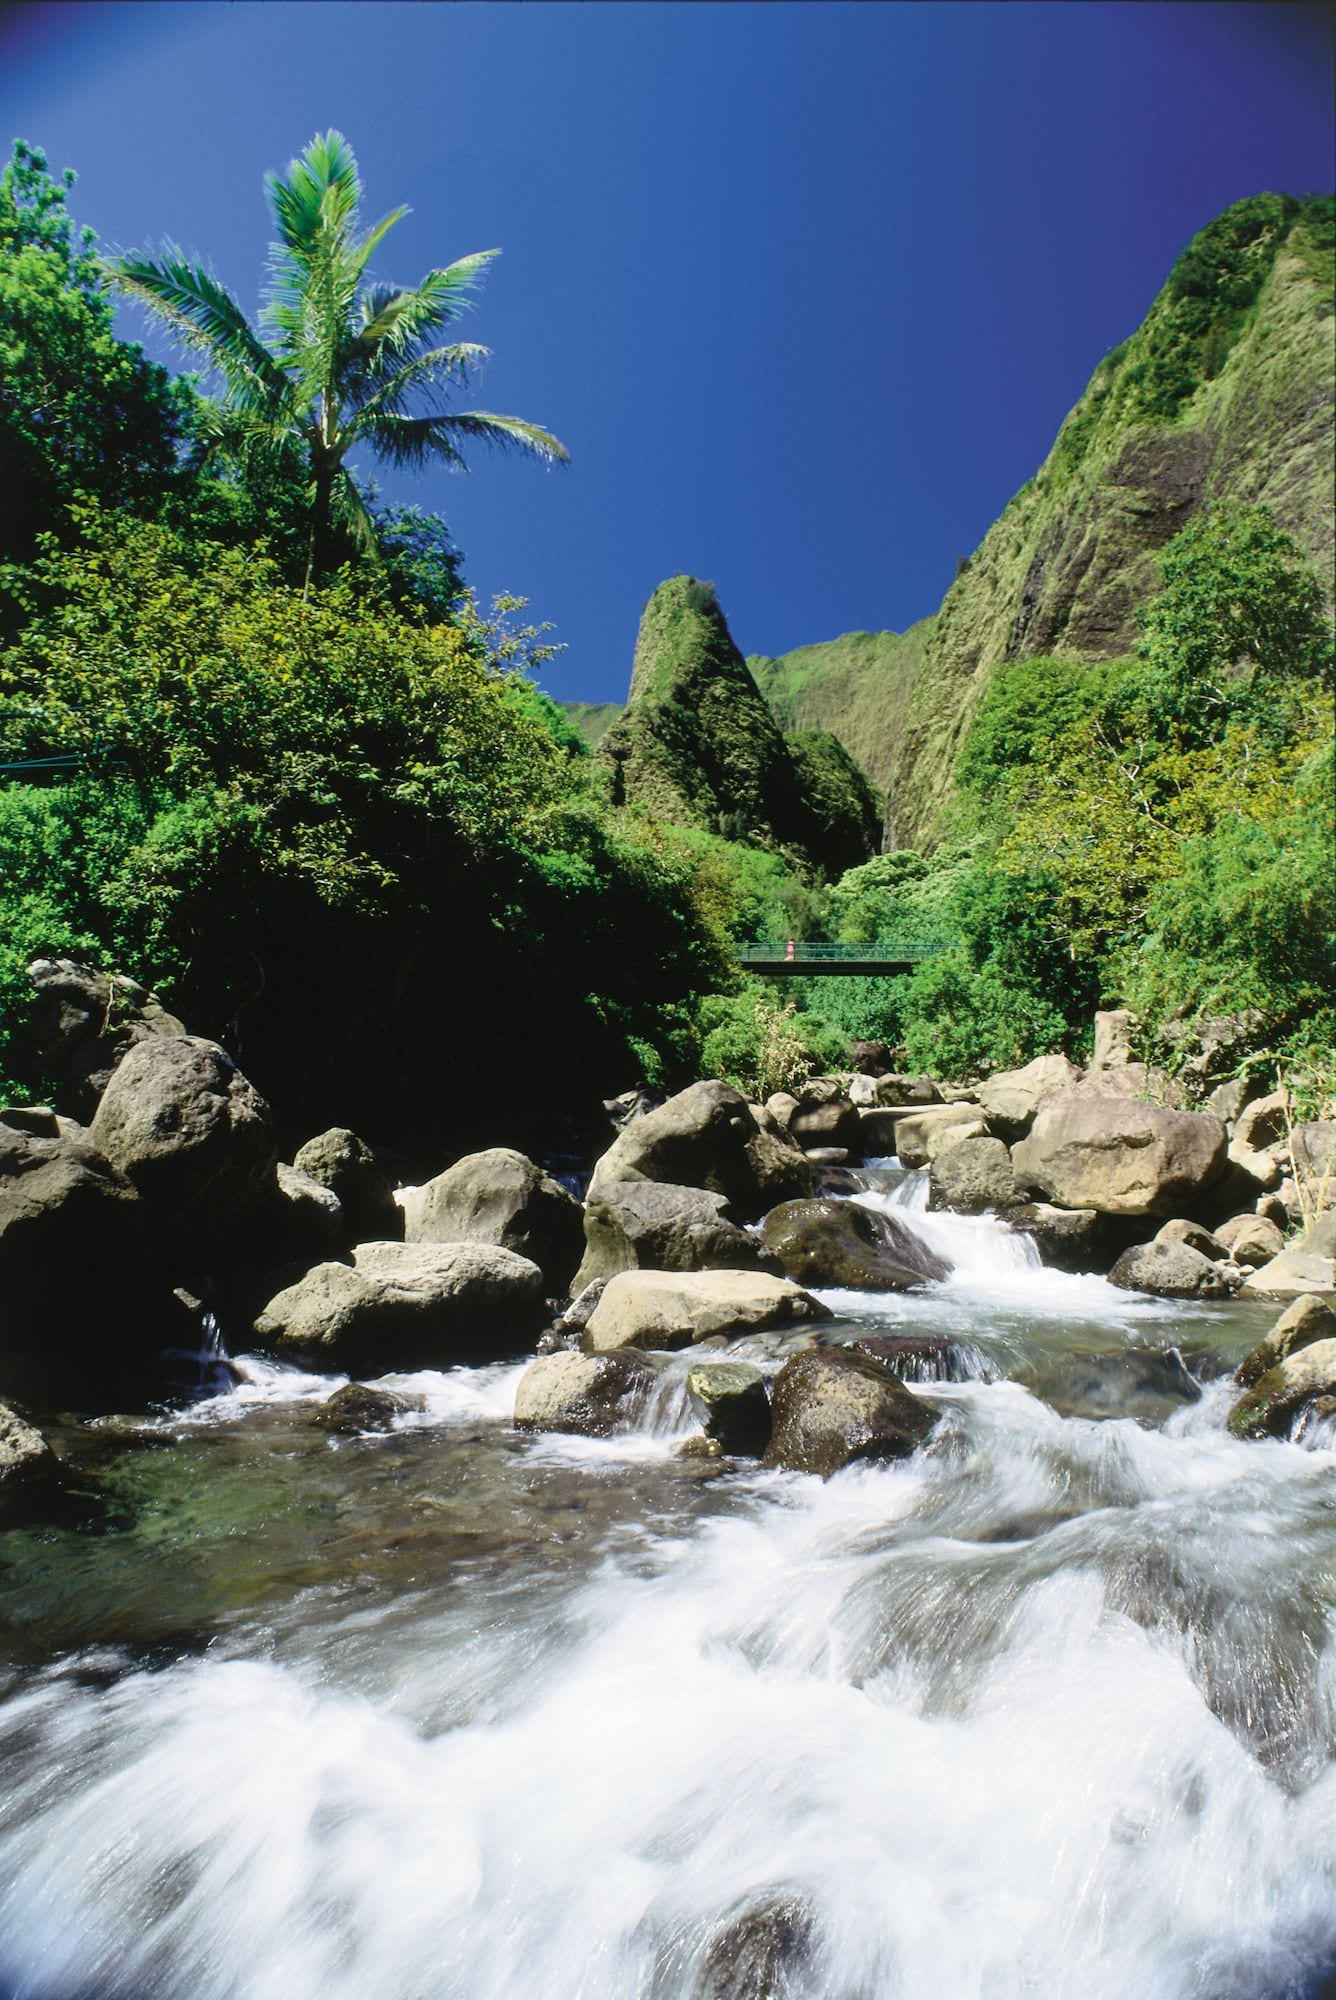 Iao Stream with Iao Needle in background, Iao Valley, Maui